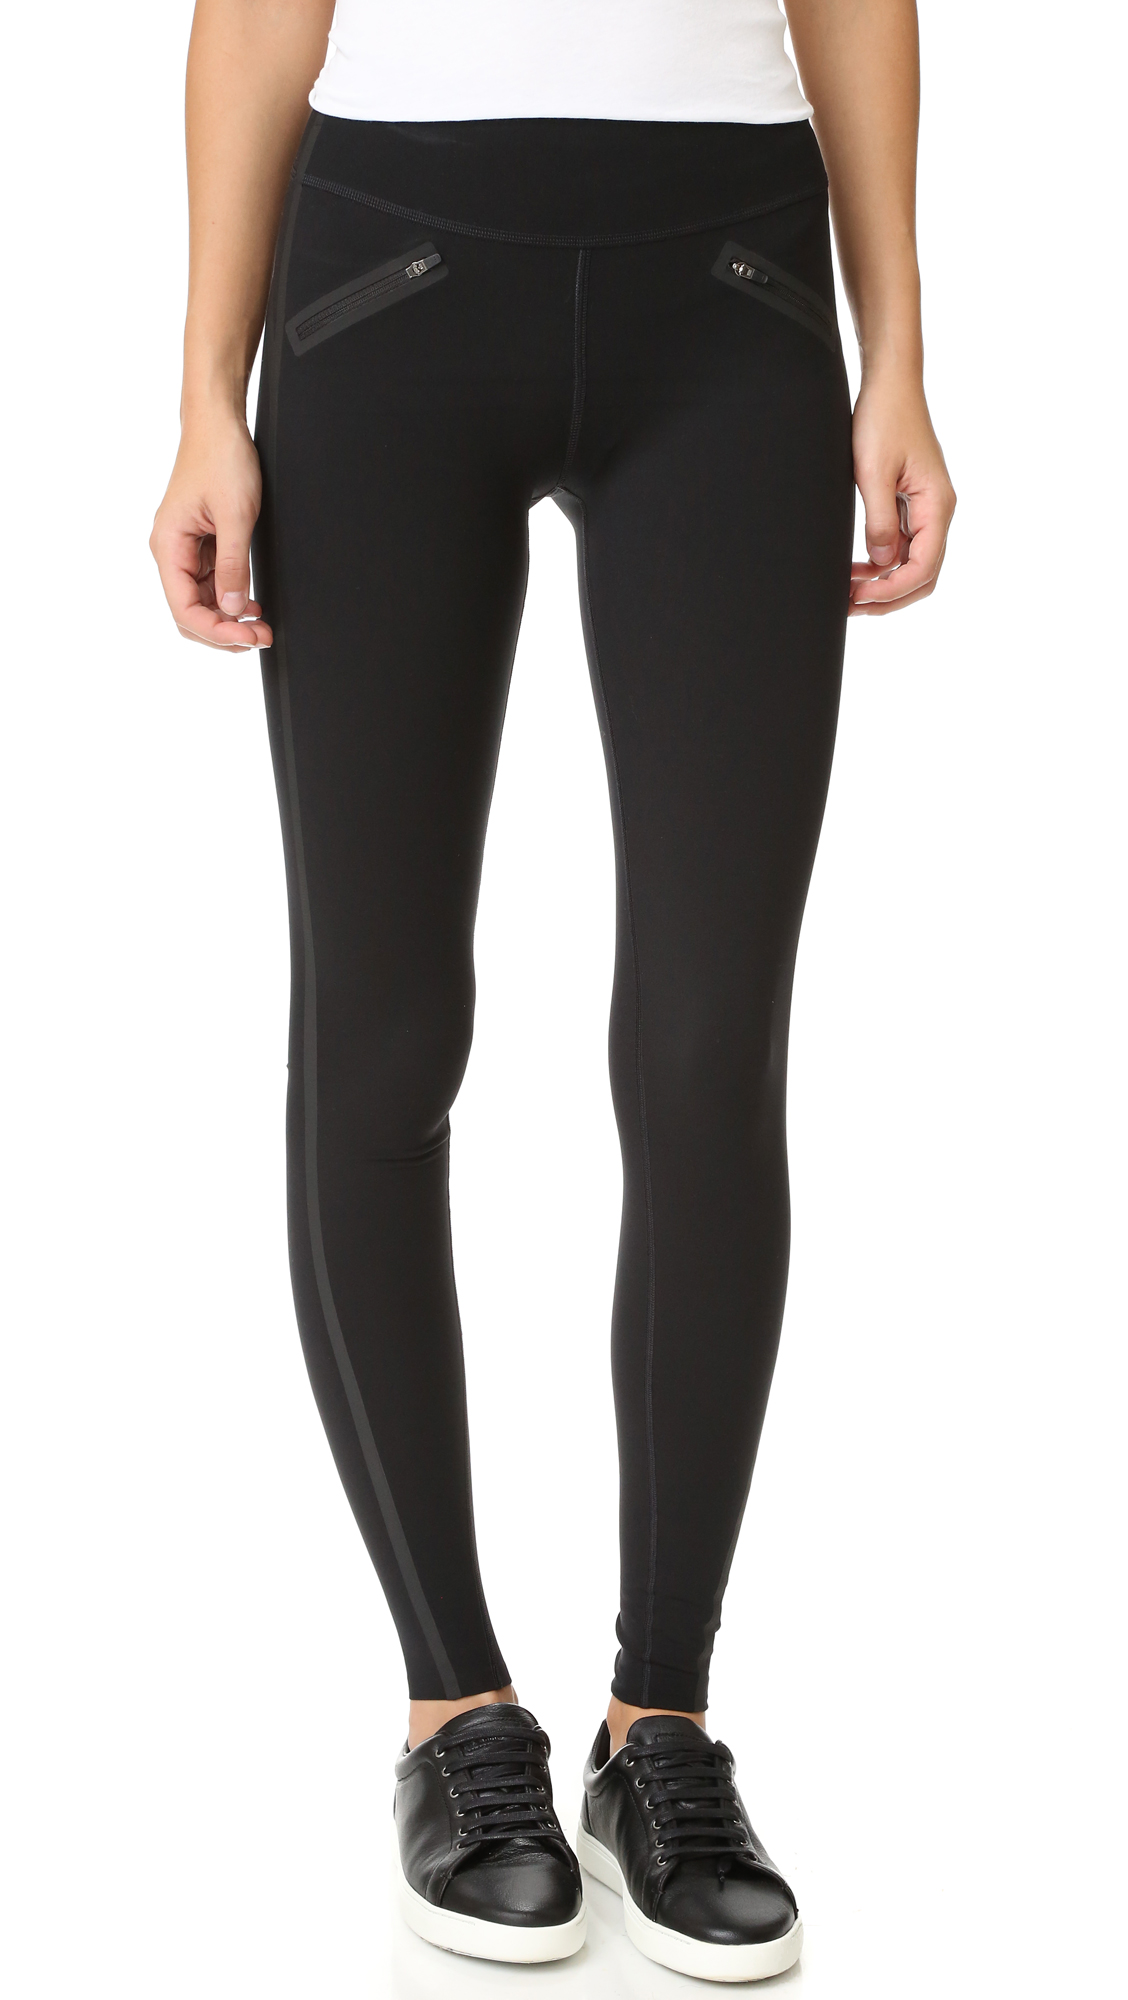 Every Wear Tech Tape Leggings